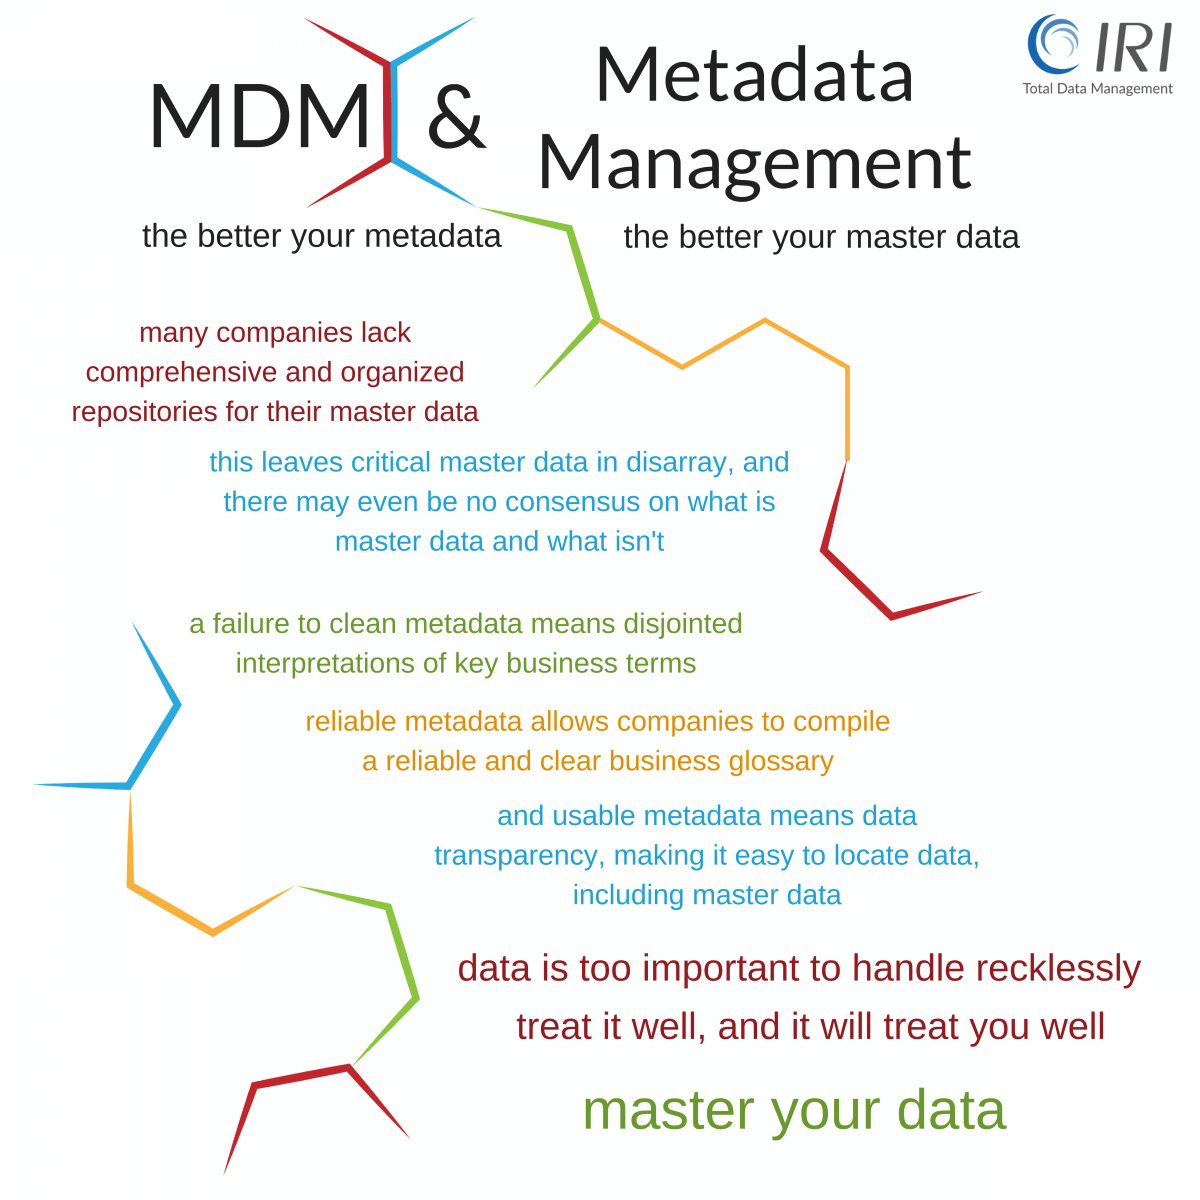 metadata and master data management (mdm) solutions from iri | iri